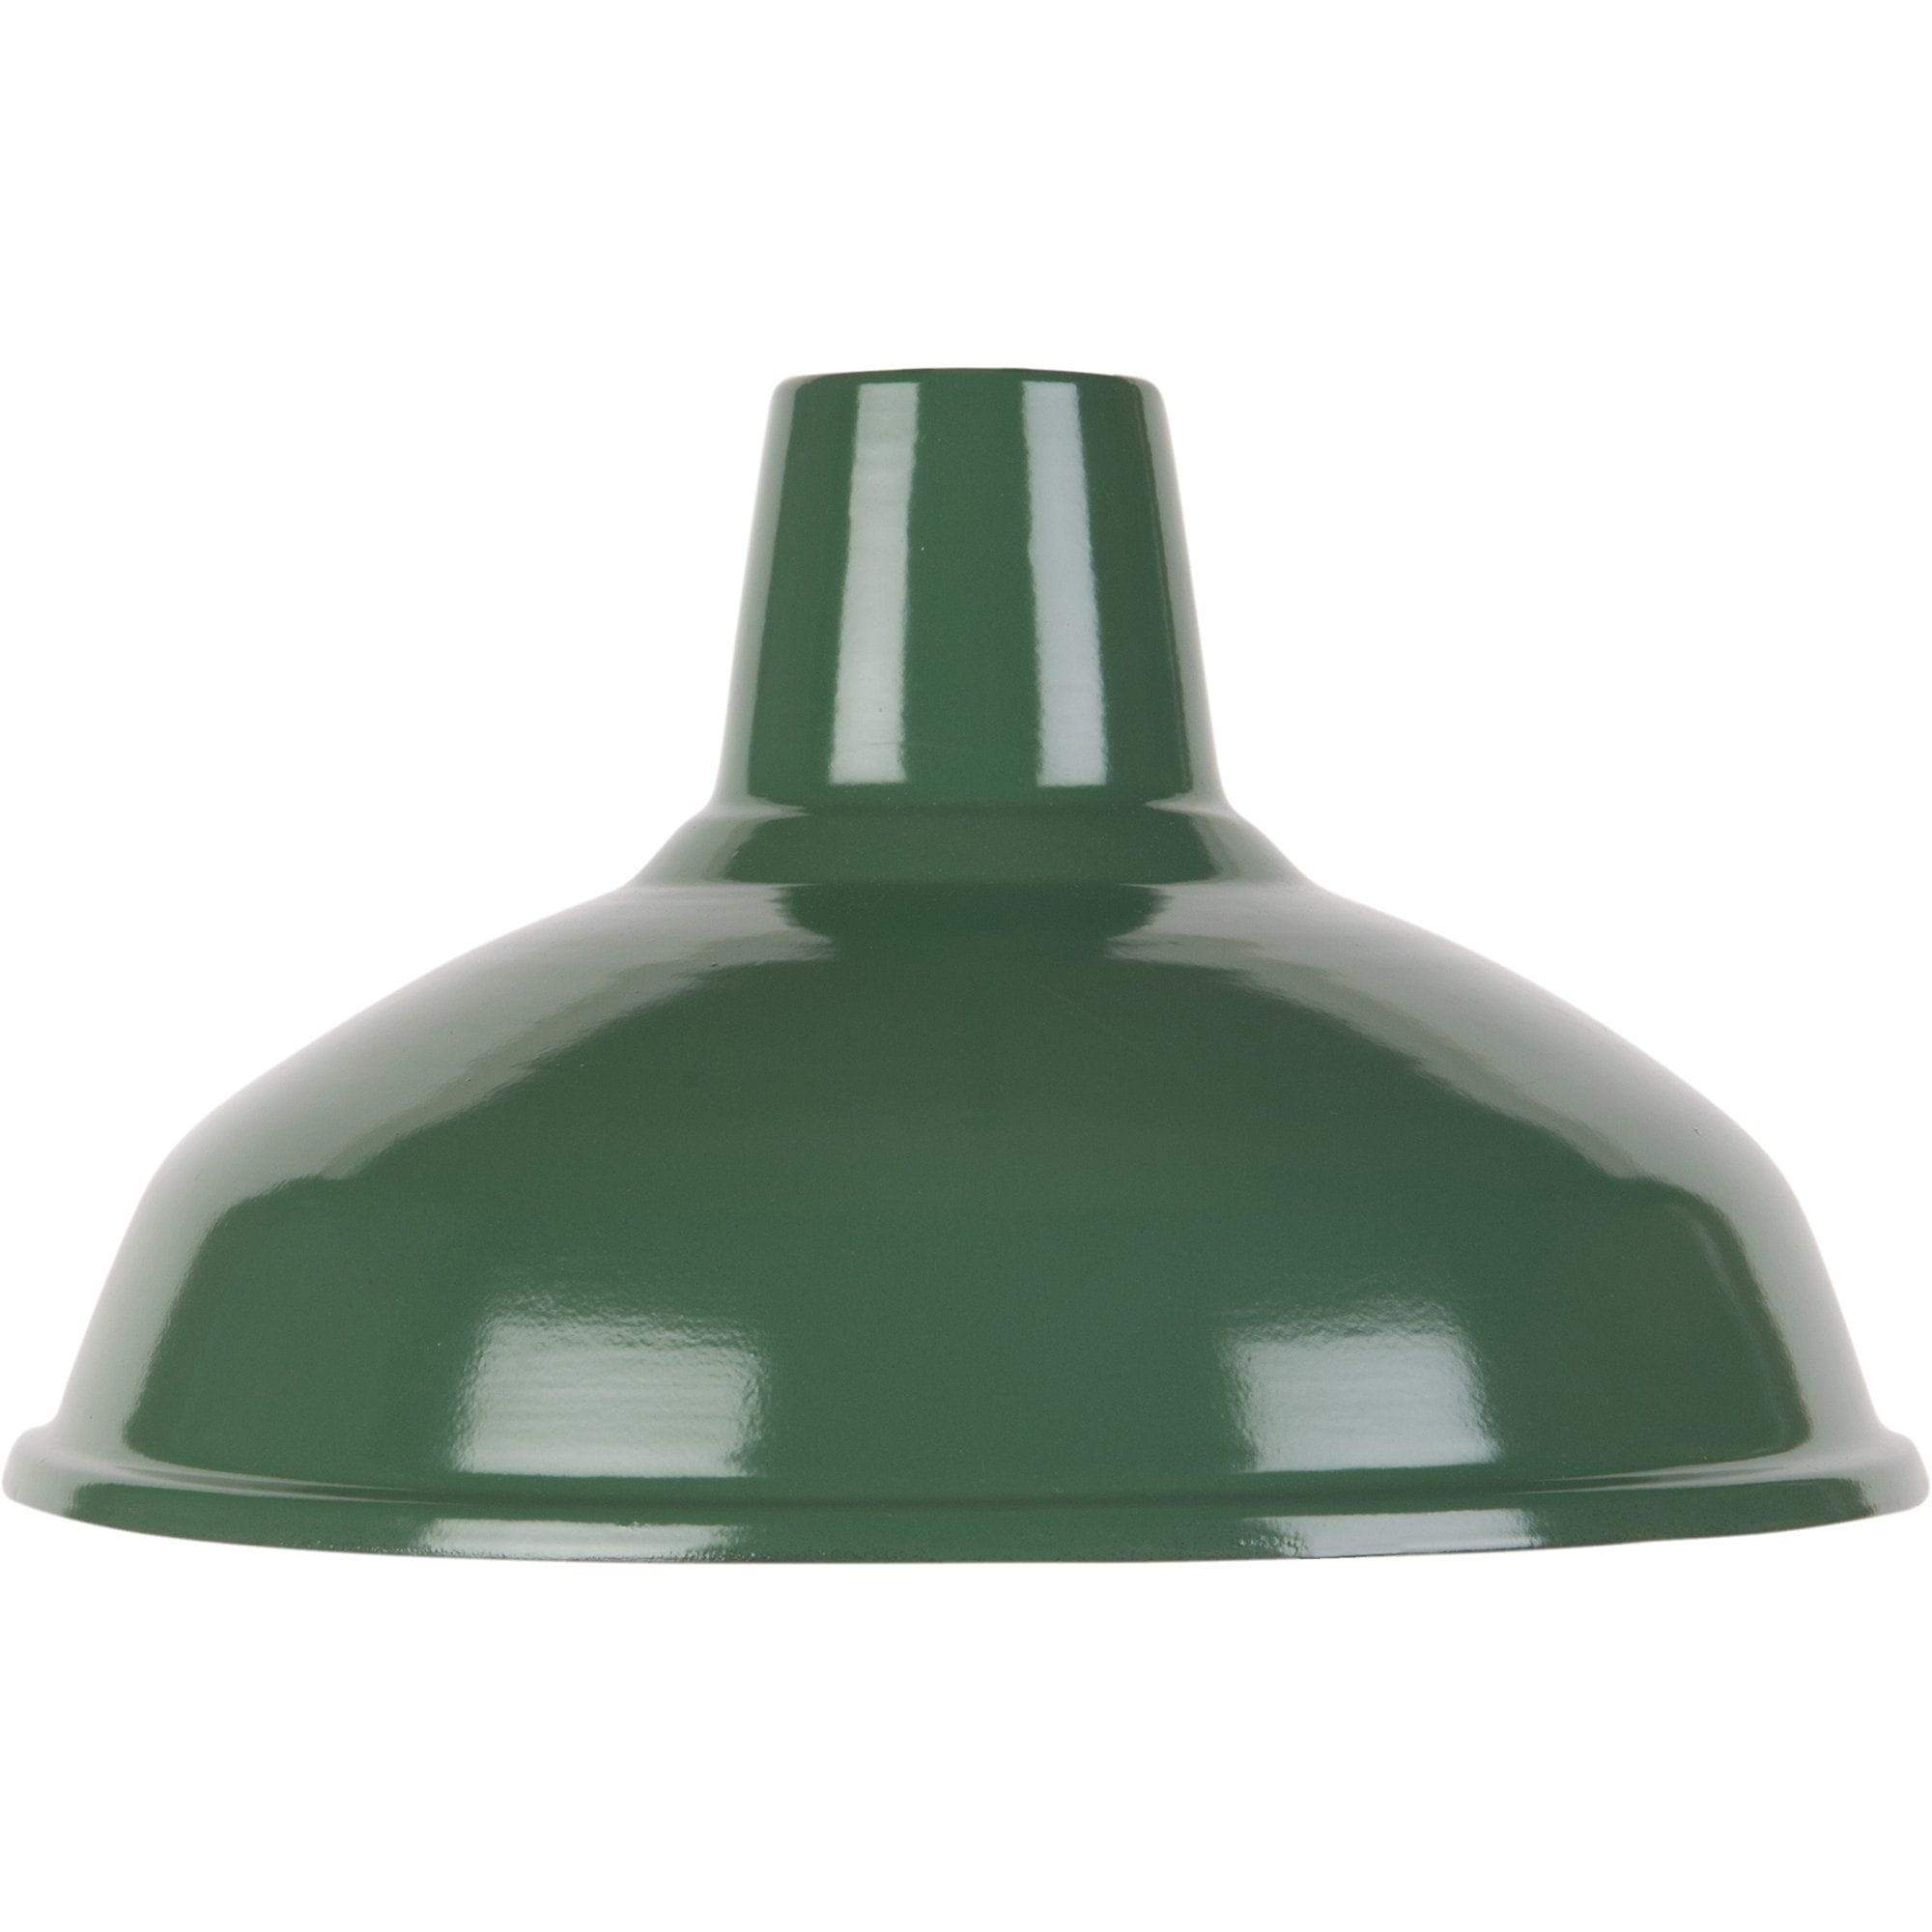 Ian Snow Ltd Green Large Enamel Lampshade